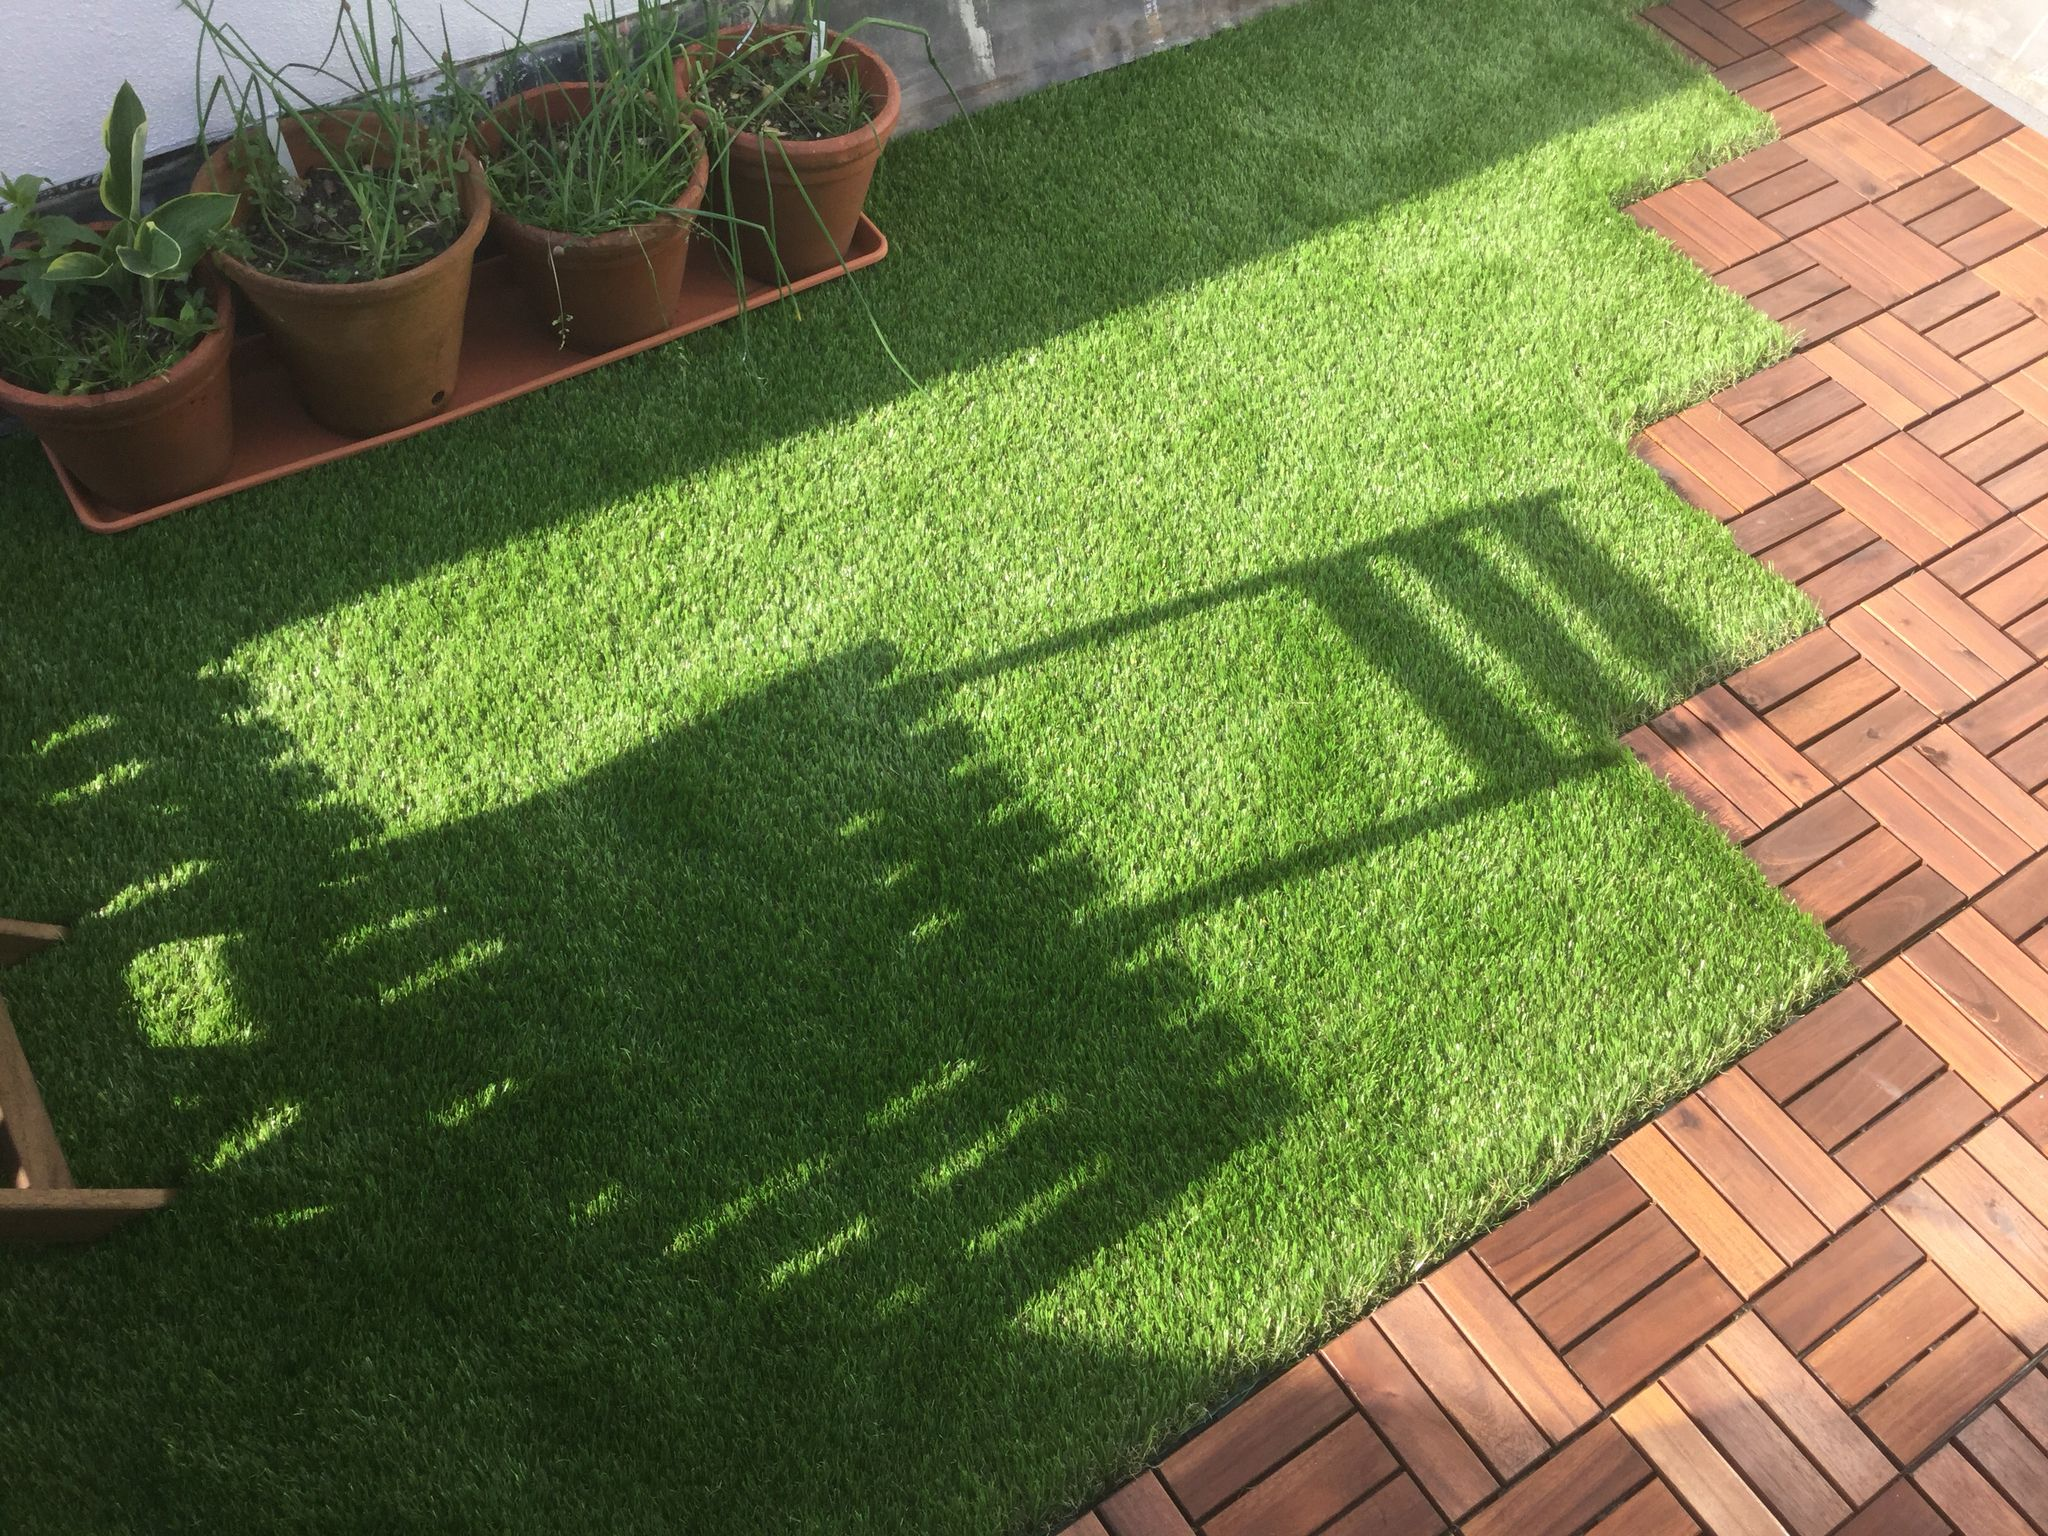 Roof terrace with ikea tiles and Oakham artificial grass 2